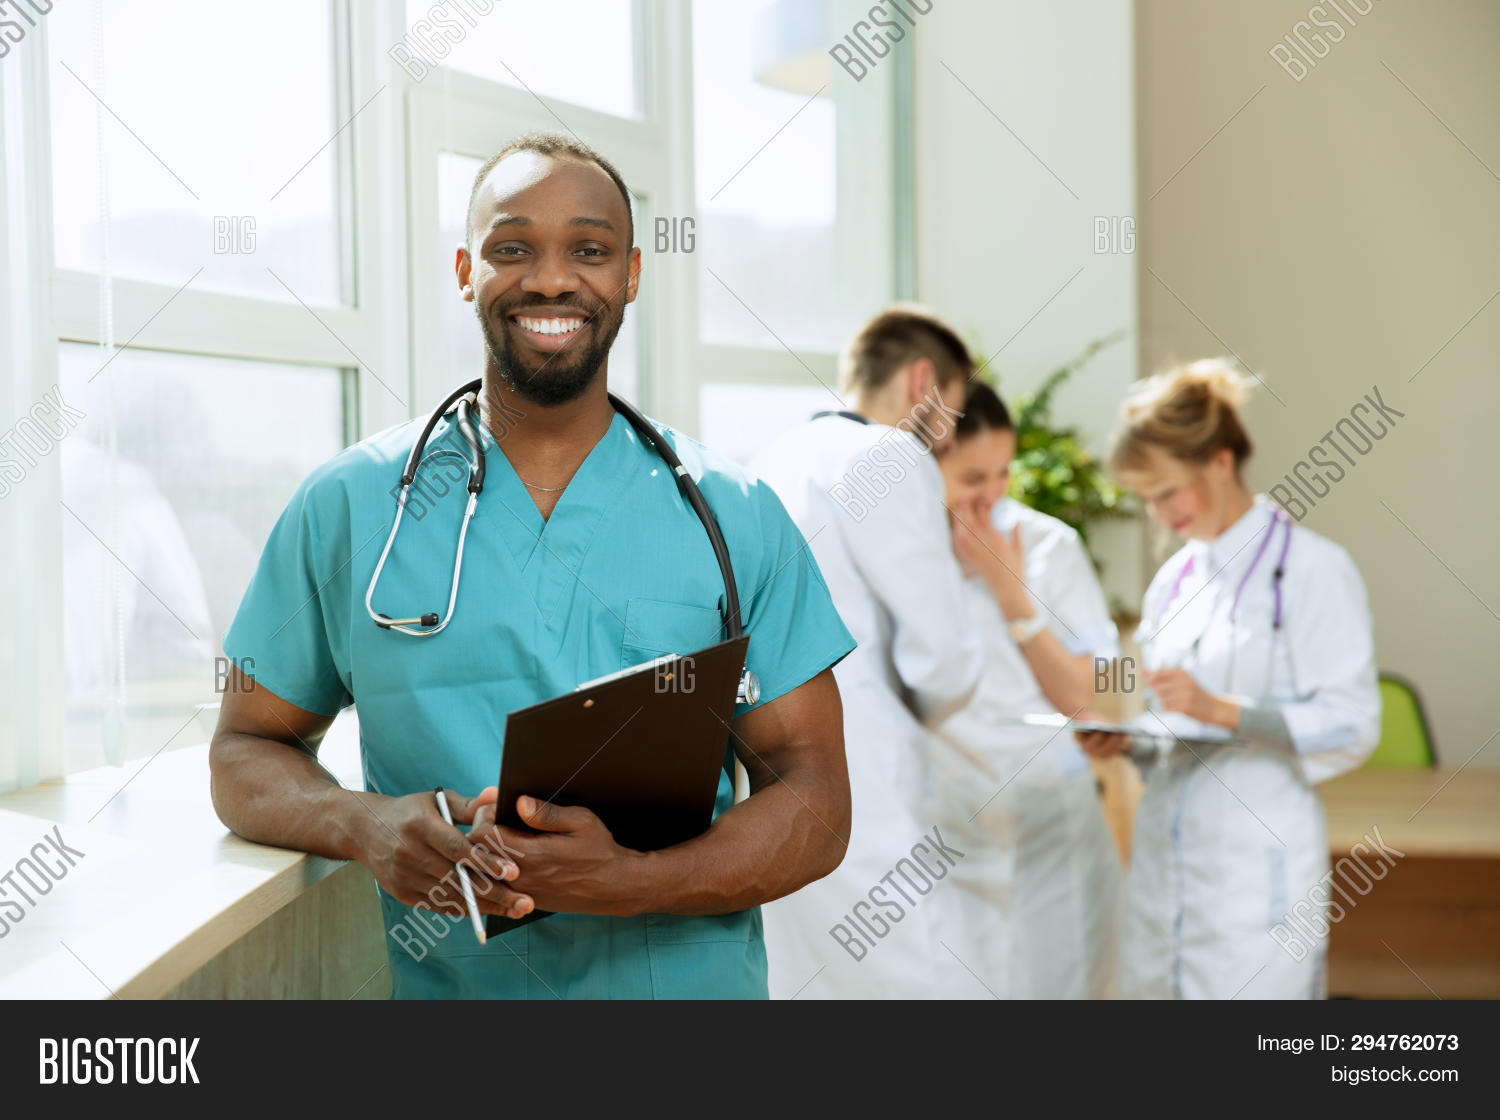 adult,african,attractive,background,banner,care,clinic,clinical,confident,doctors,emotions,female,gp,group,happy,health,healthcare,hospital,job,male,man,medical,medicine,nurses,occupation,people,person,pharmacist,physician,portrait,positive,practitioner,profession,professional,smart,smile,smiling,specialist,staff,stethoscope,surgeon,team,teamwork,uniform,woman,work,workers,young